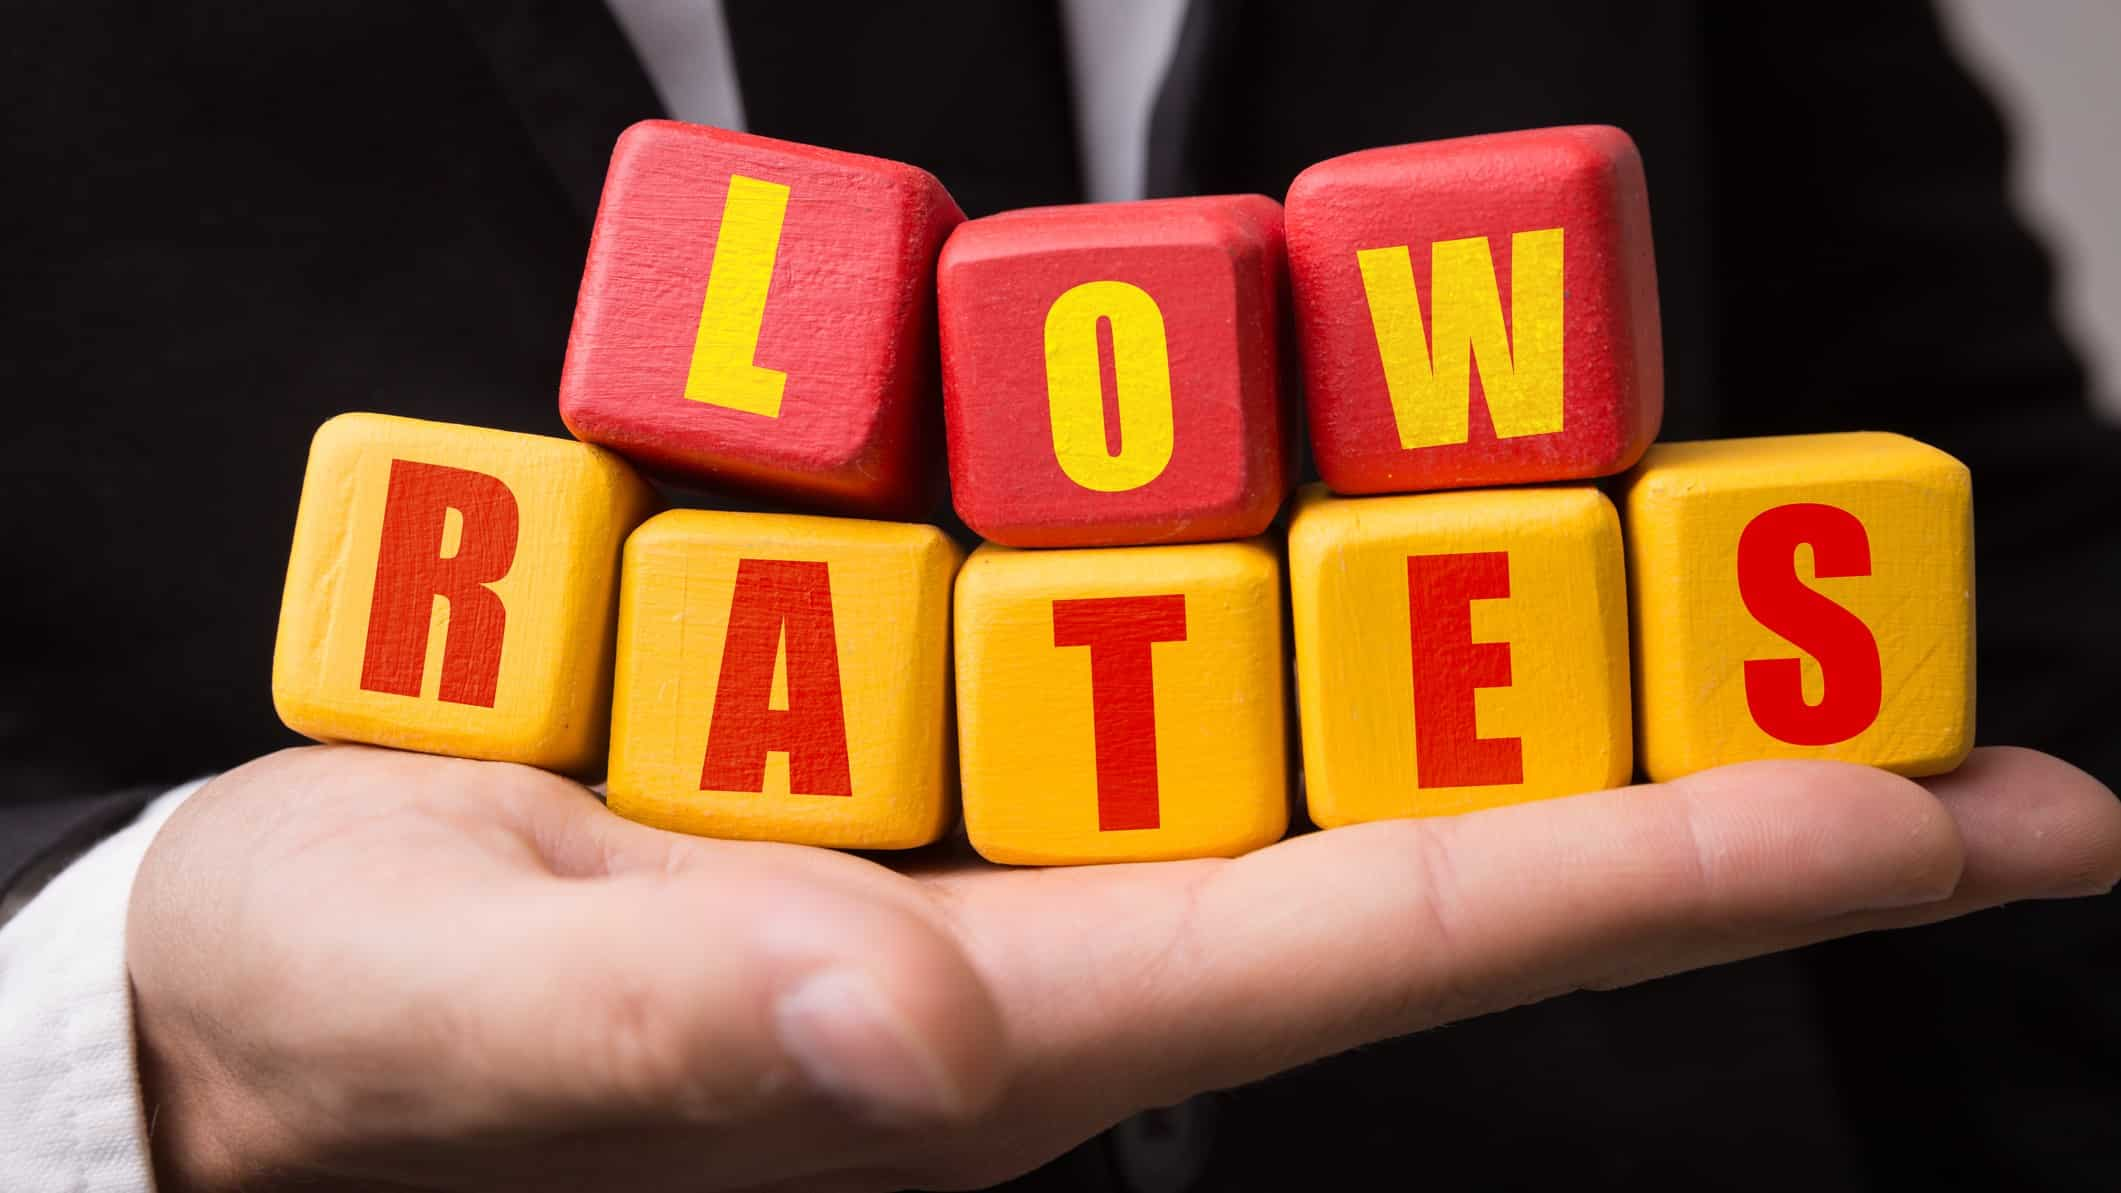 hand holding wooden blocks that spell 'low rates' representing low interest rates